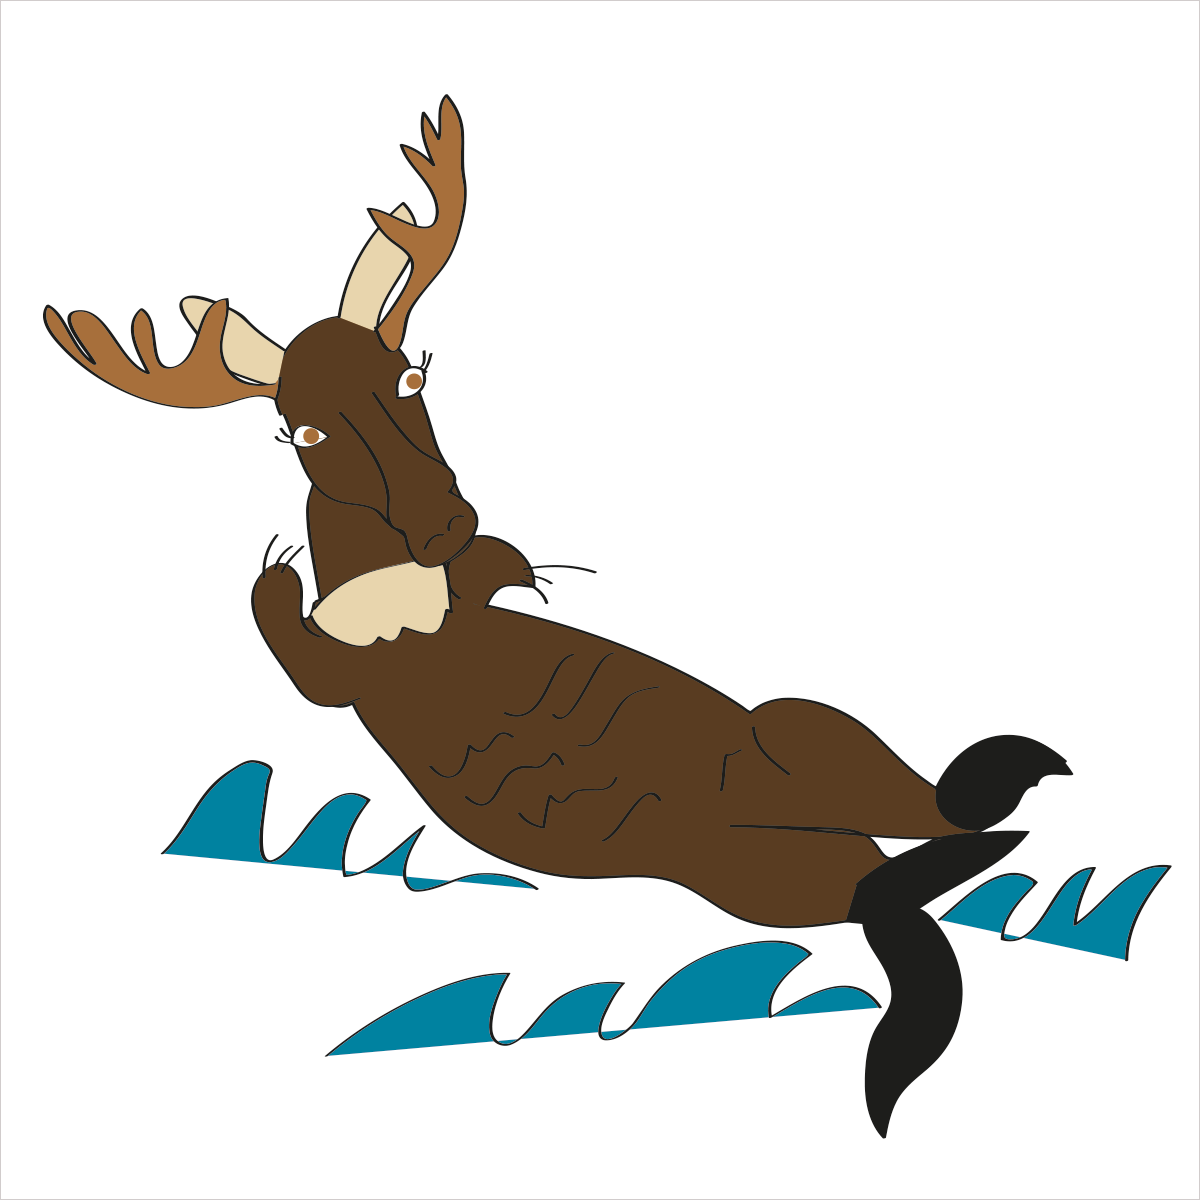 She is slow moving and floats on her back at sea. She is OTTERMOOSE